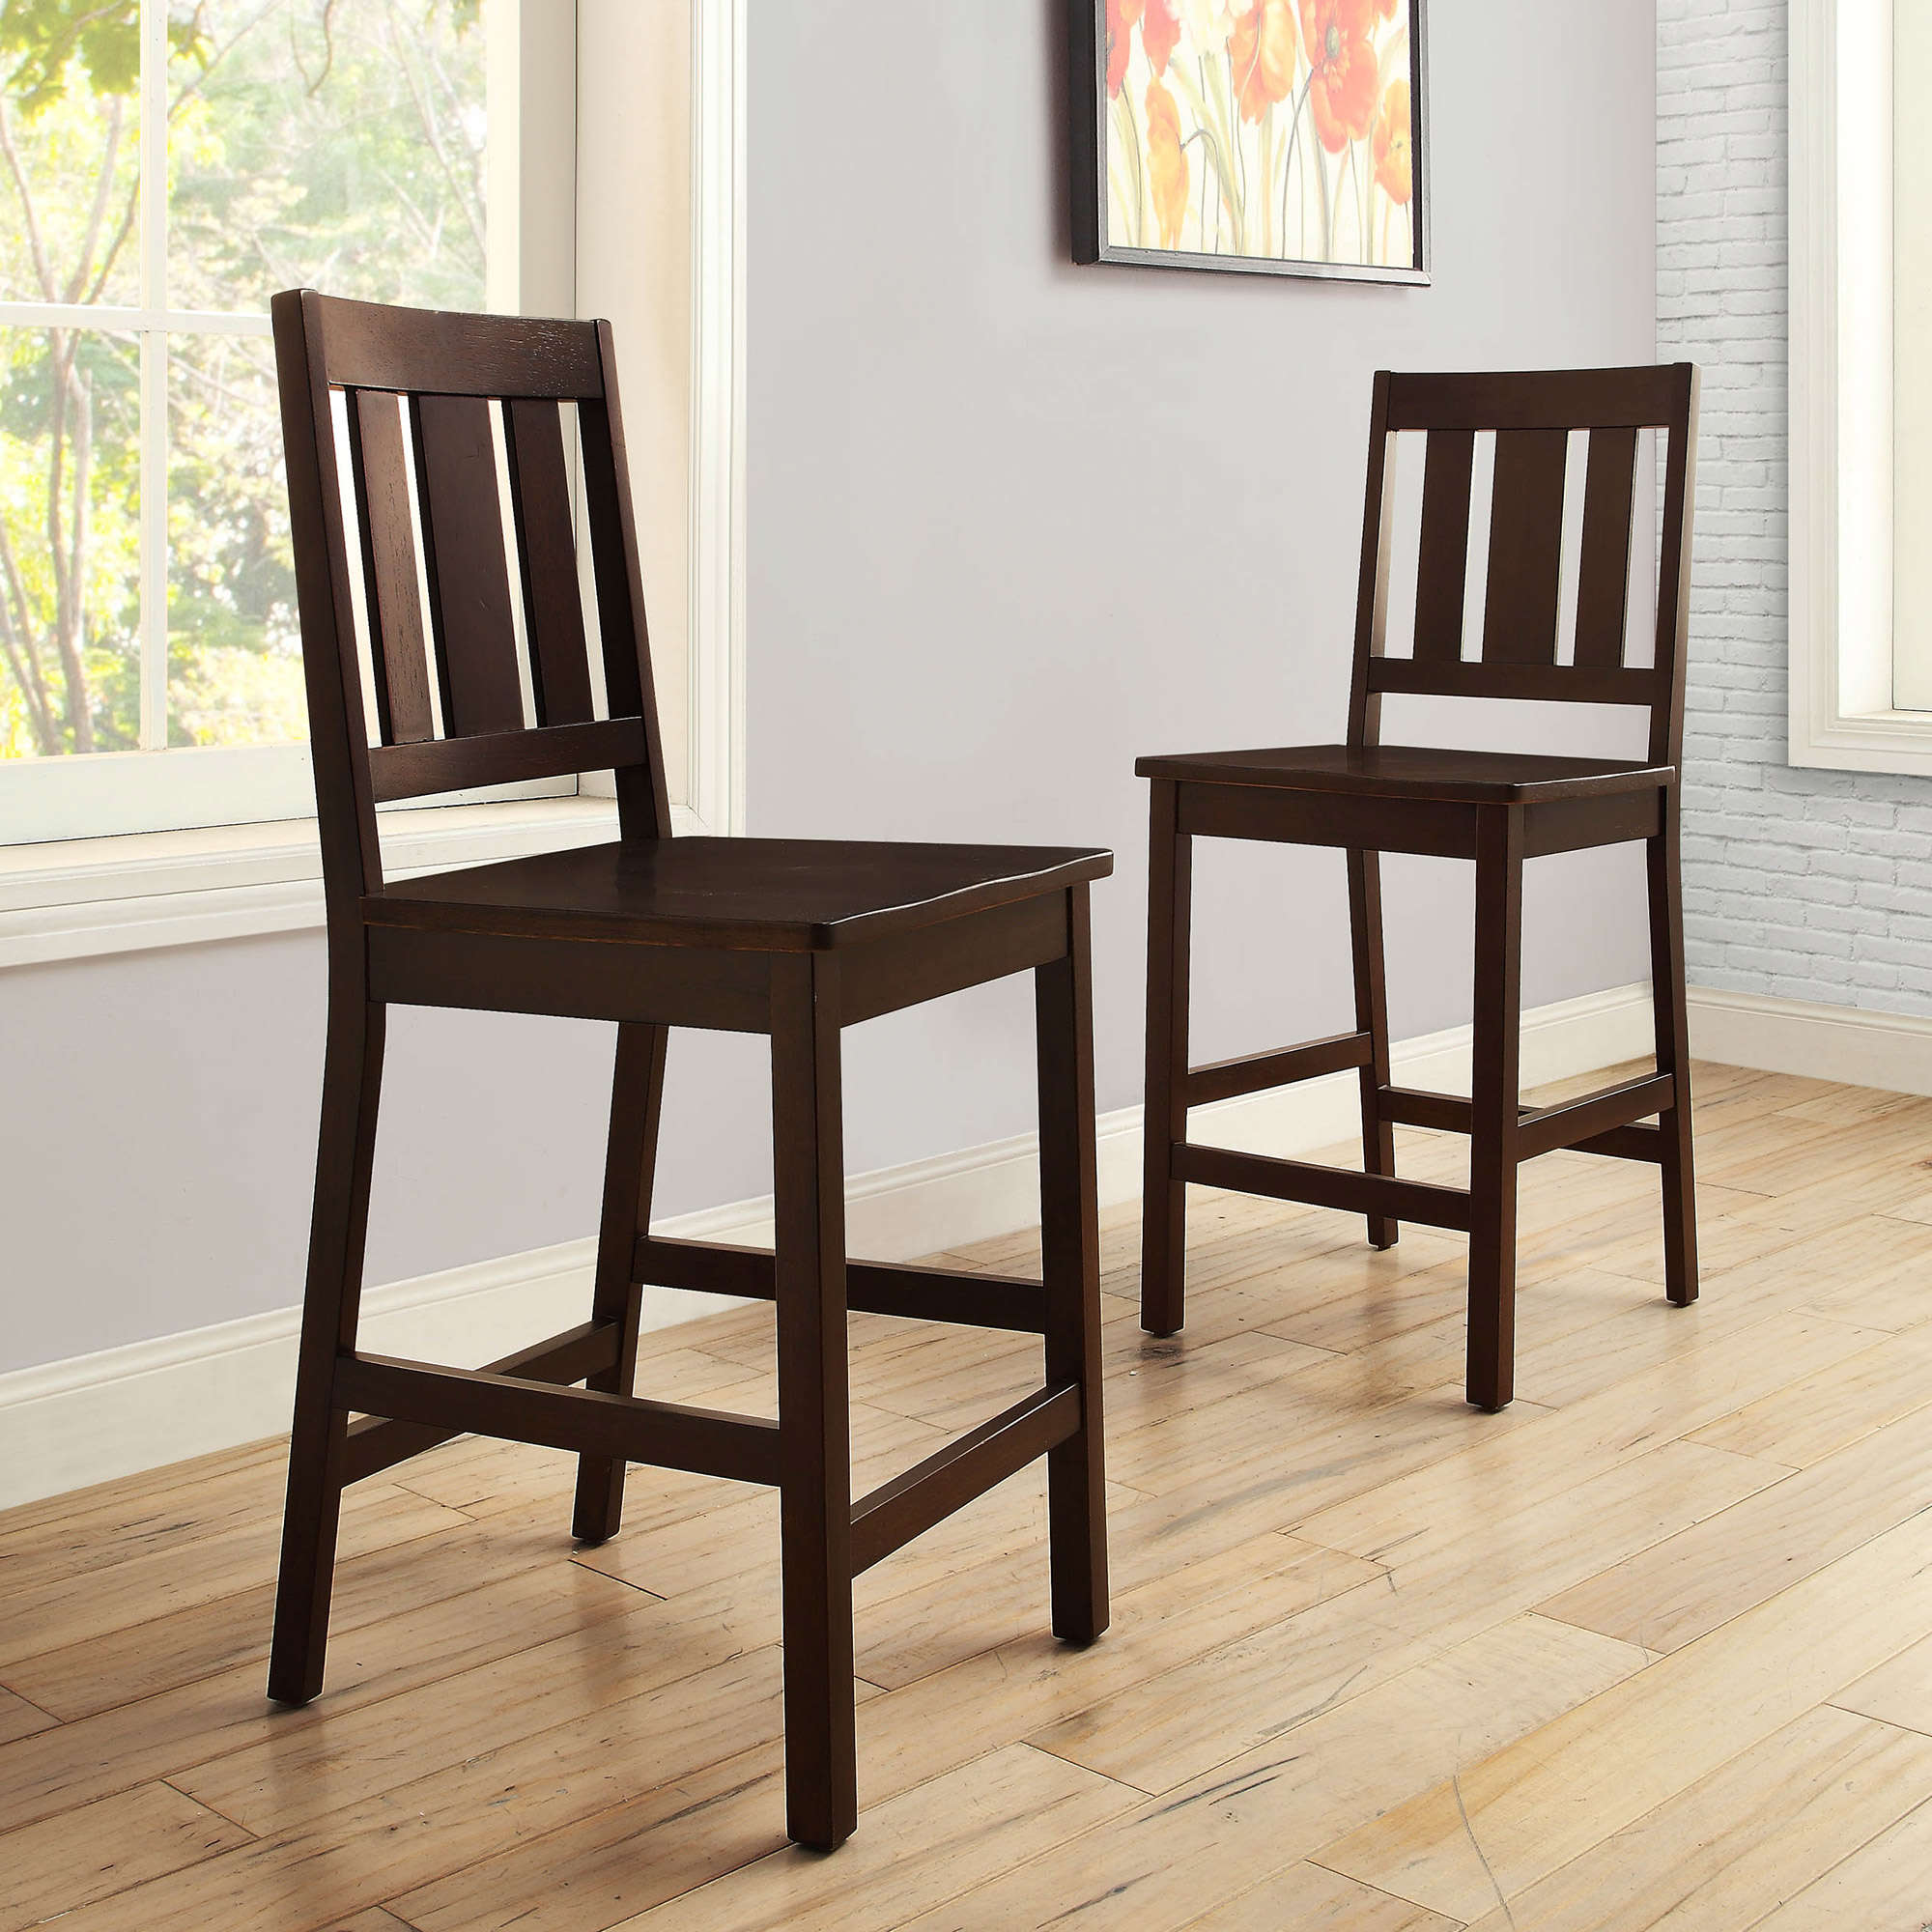 Beautiful Better Homes And Gardens Bankston Counter Height Stool, Set Of 2, Mocha